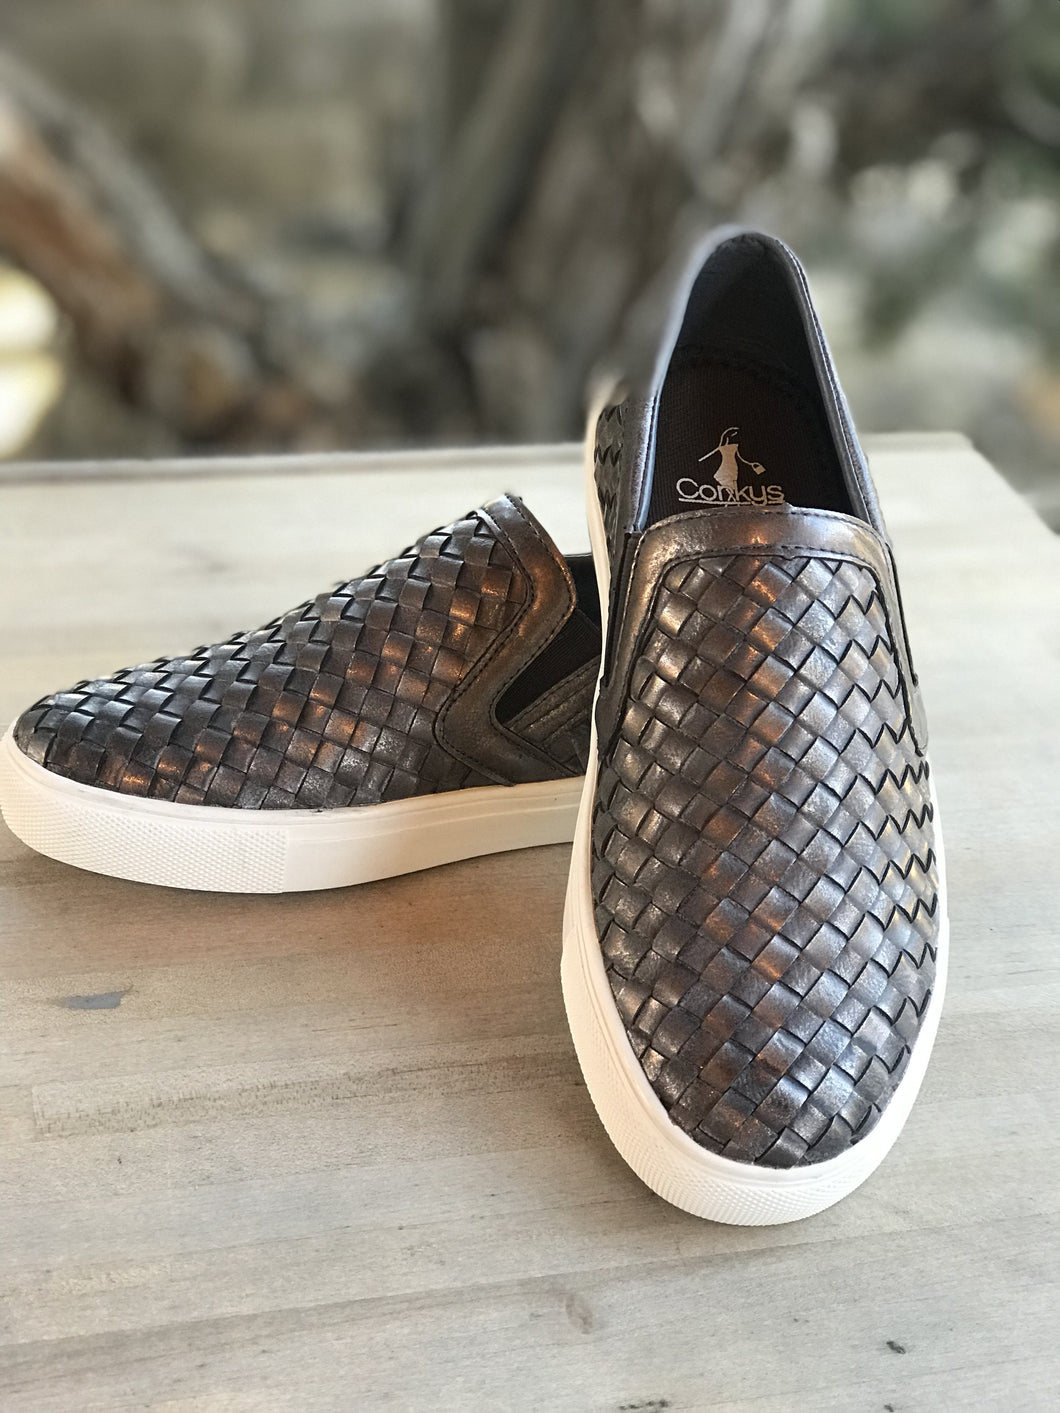 Corky's Powder Brushed Bronze Slip on Sneaker Shoe